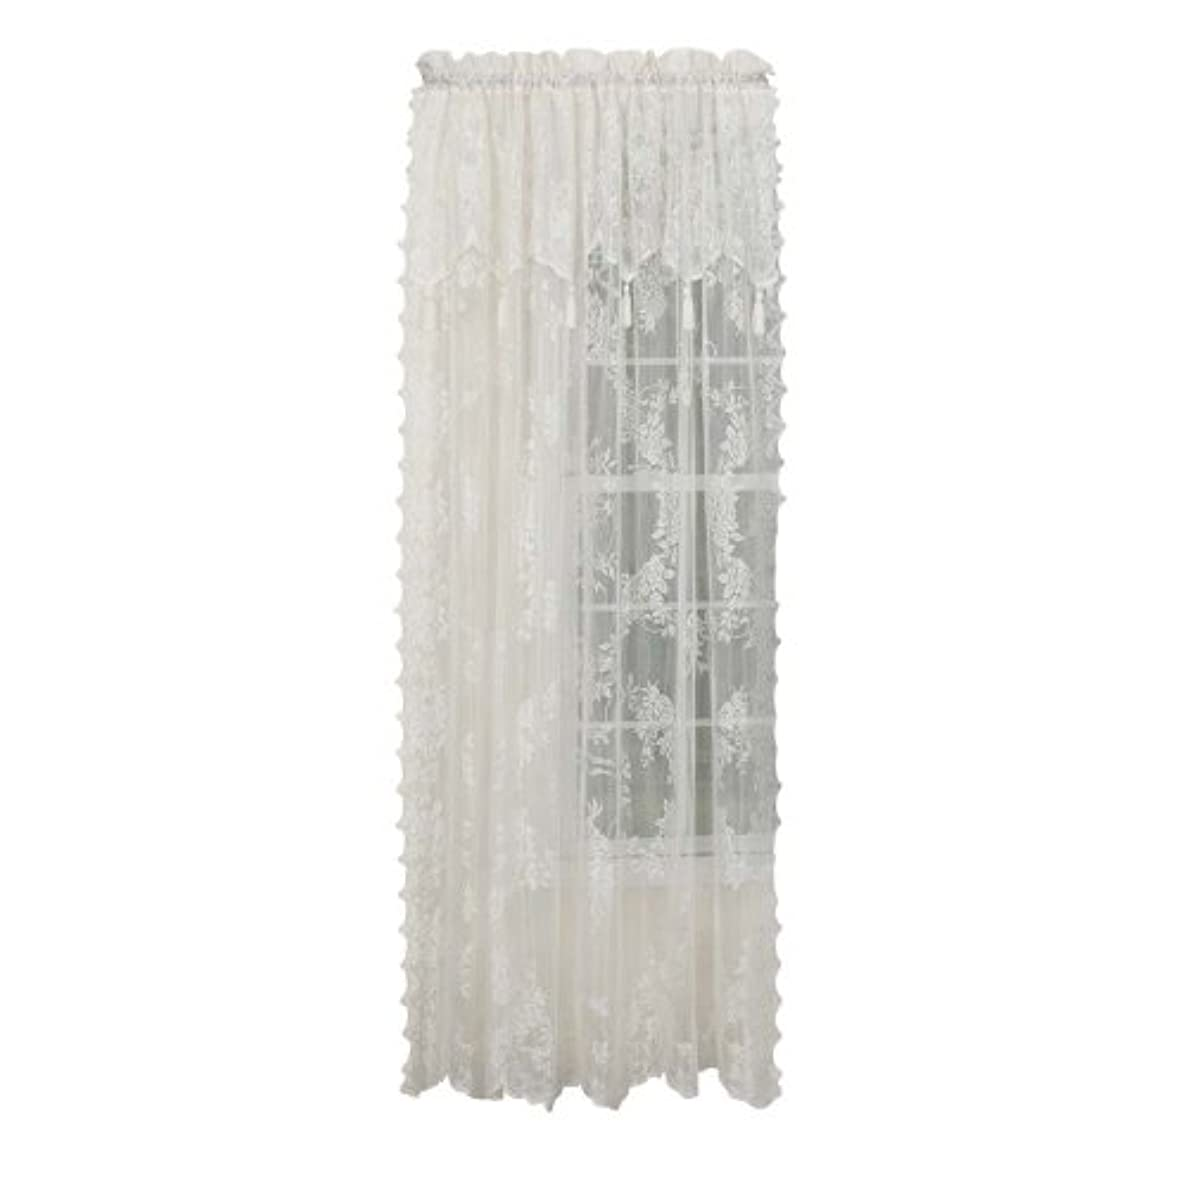 Style Master Renaissance Carley Lace 56-Inch by 84-Inch Panel with 17-Inch Attached Valance, Ecru